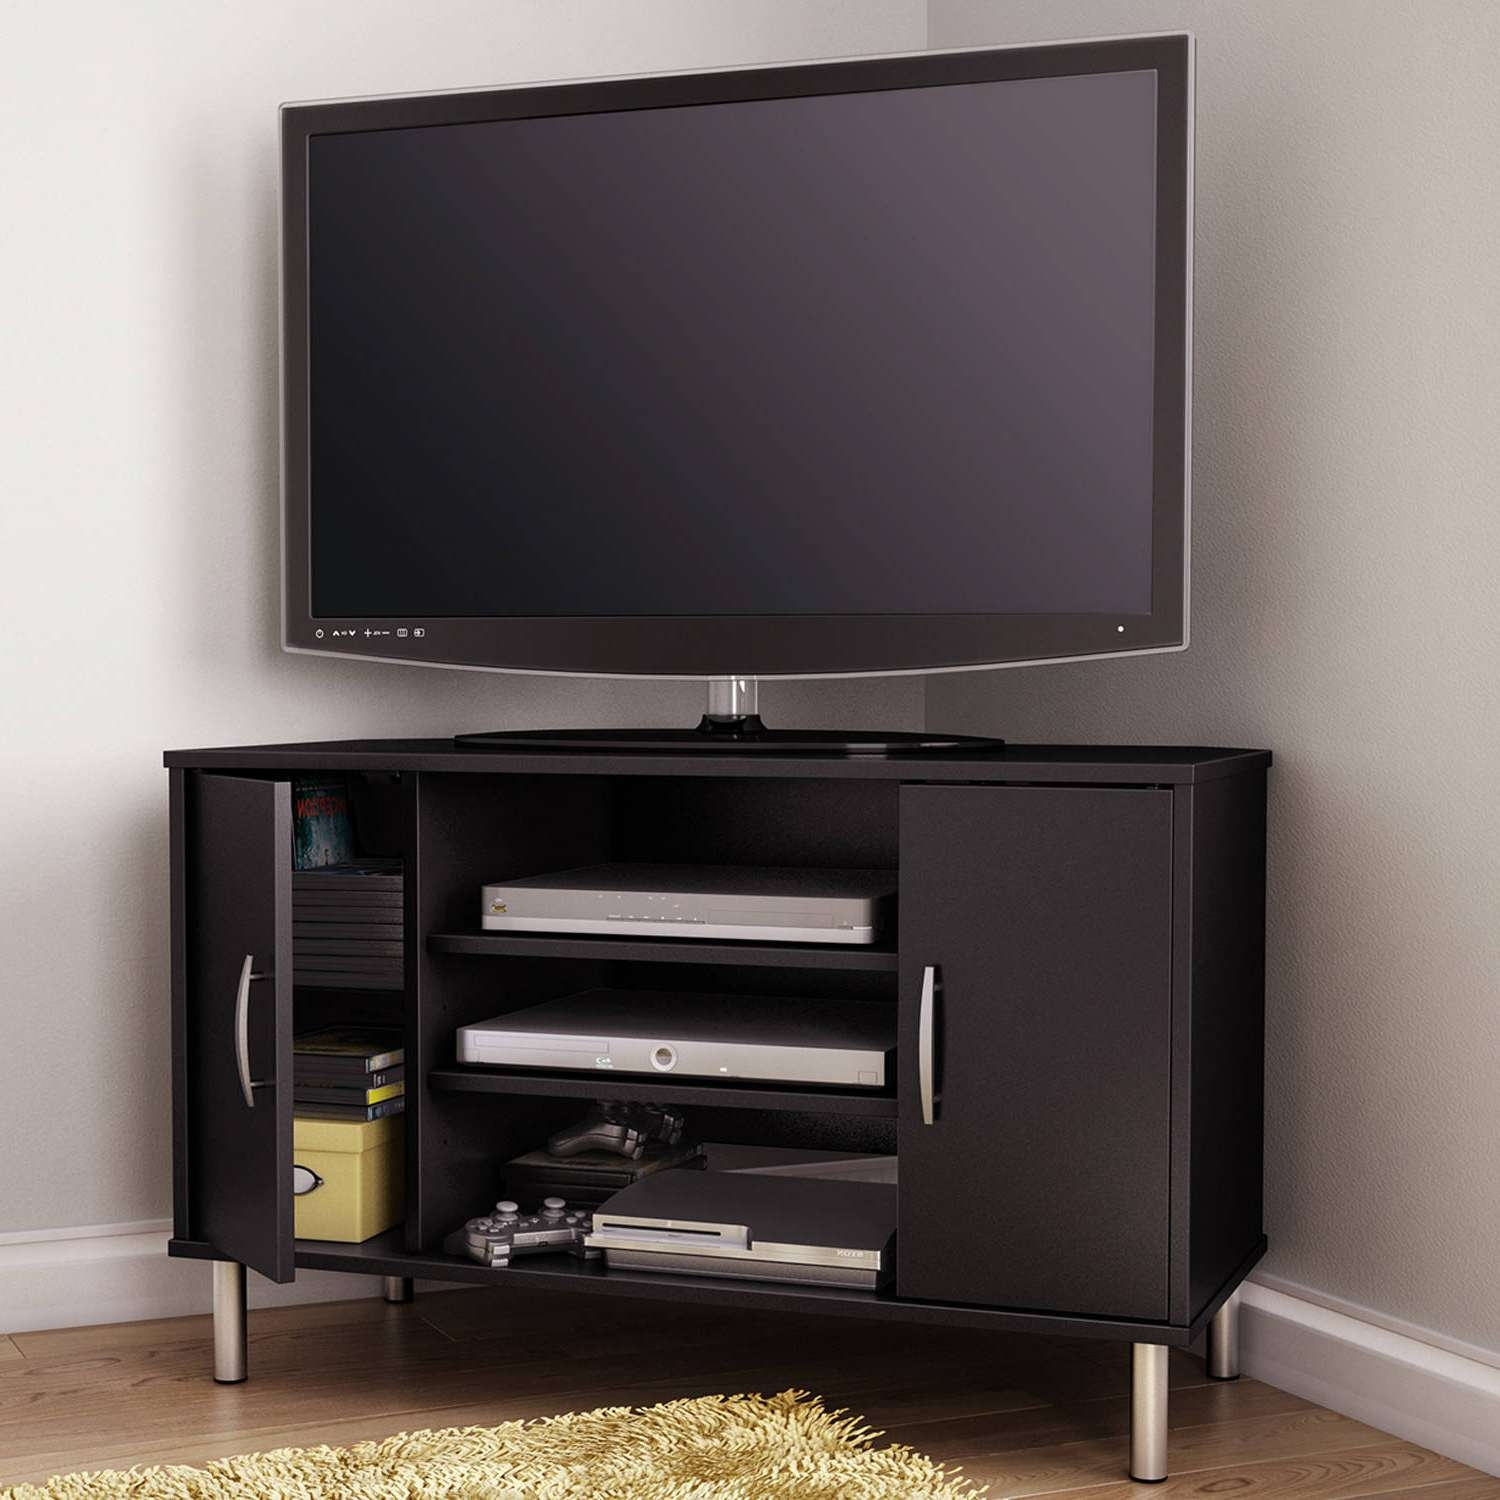 Skinny Tv Stand Tags : 41 Exceptional Skinny Tv Stand Images Regarding Black Corner Tv Stands For Tvs Up To  (View 7 of 20)